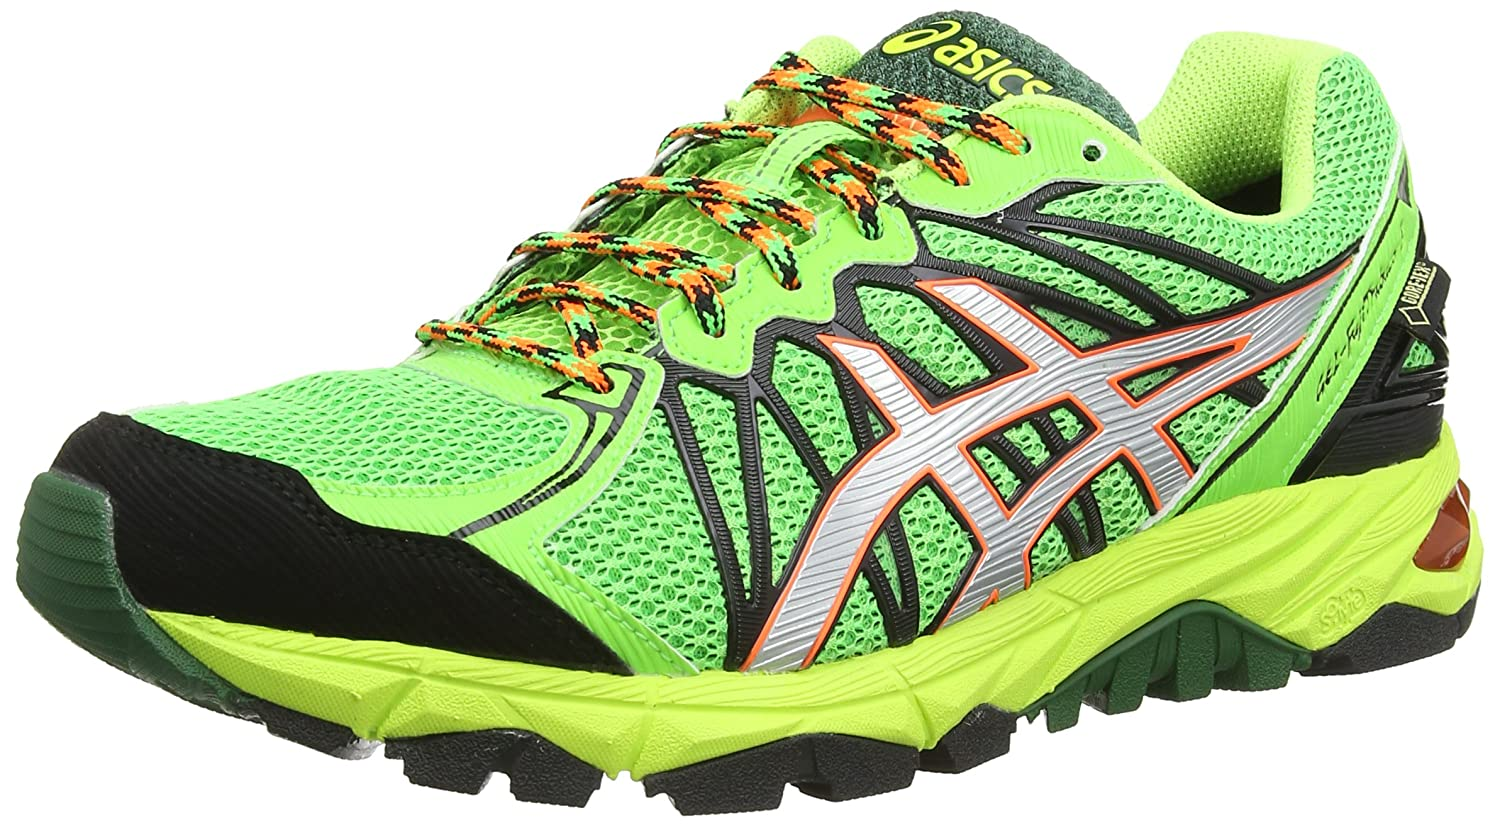 ASICS Gel Fujitrabuco 3 G Tx, Men's Trail Running Shoes